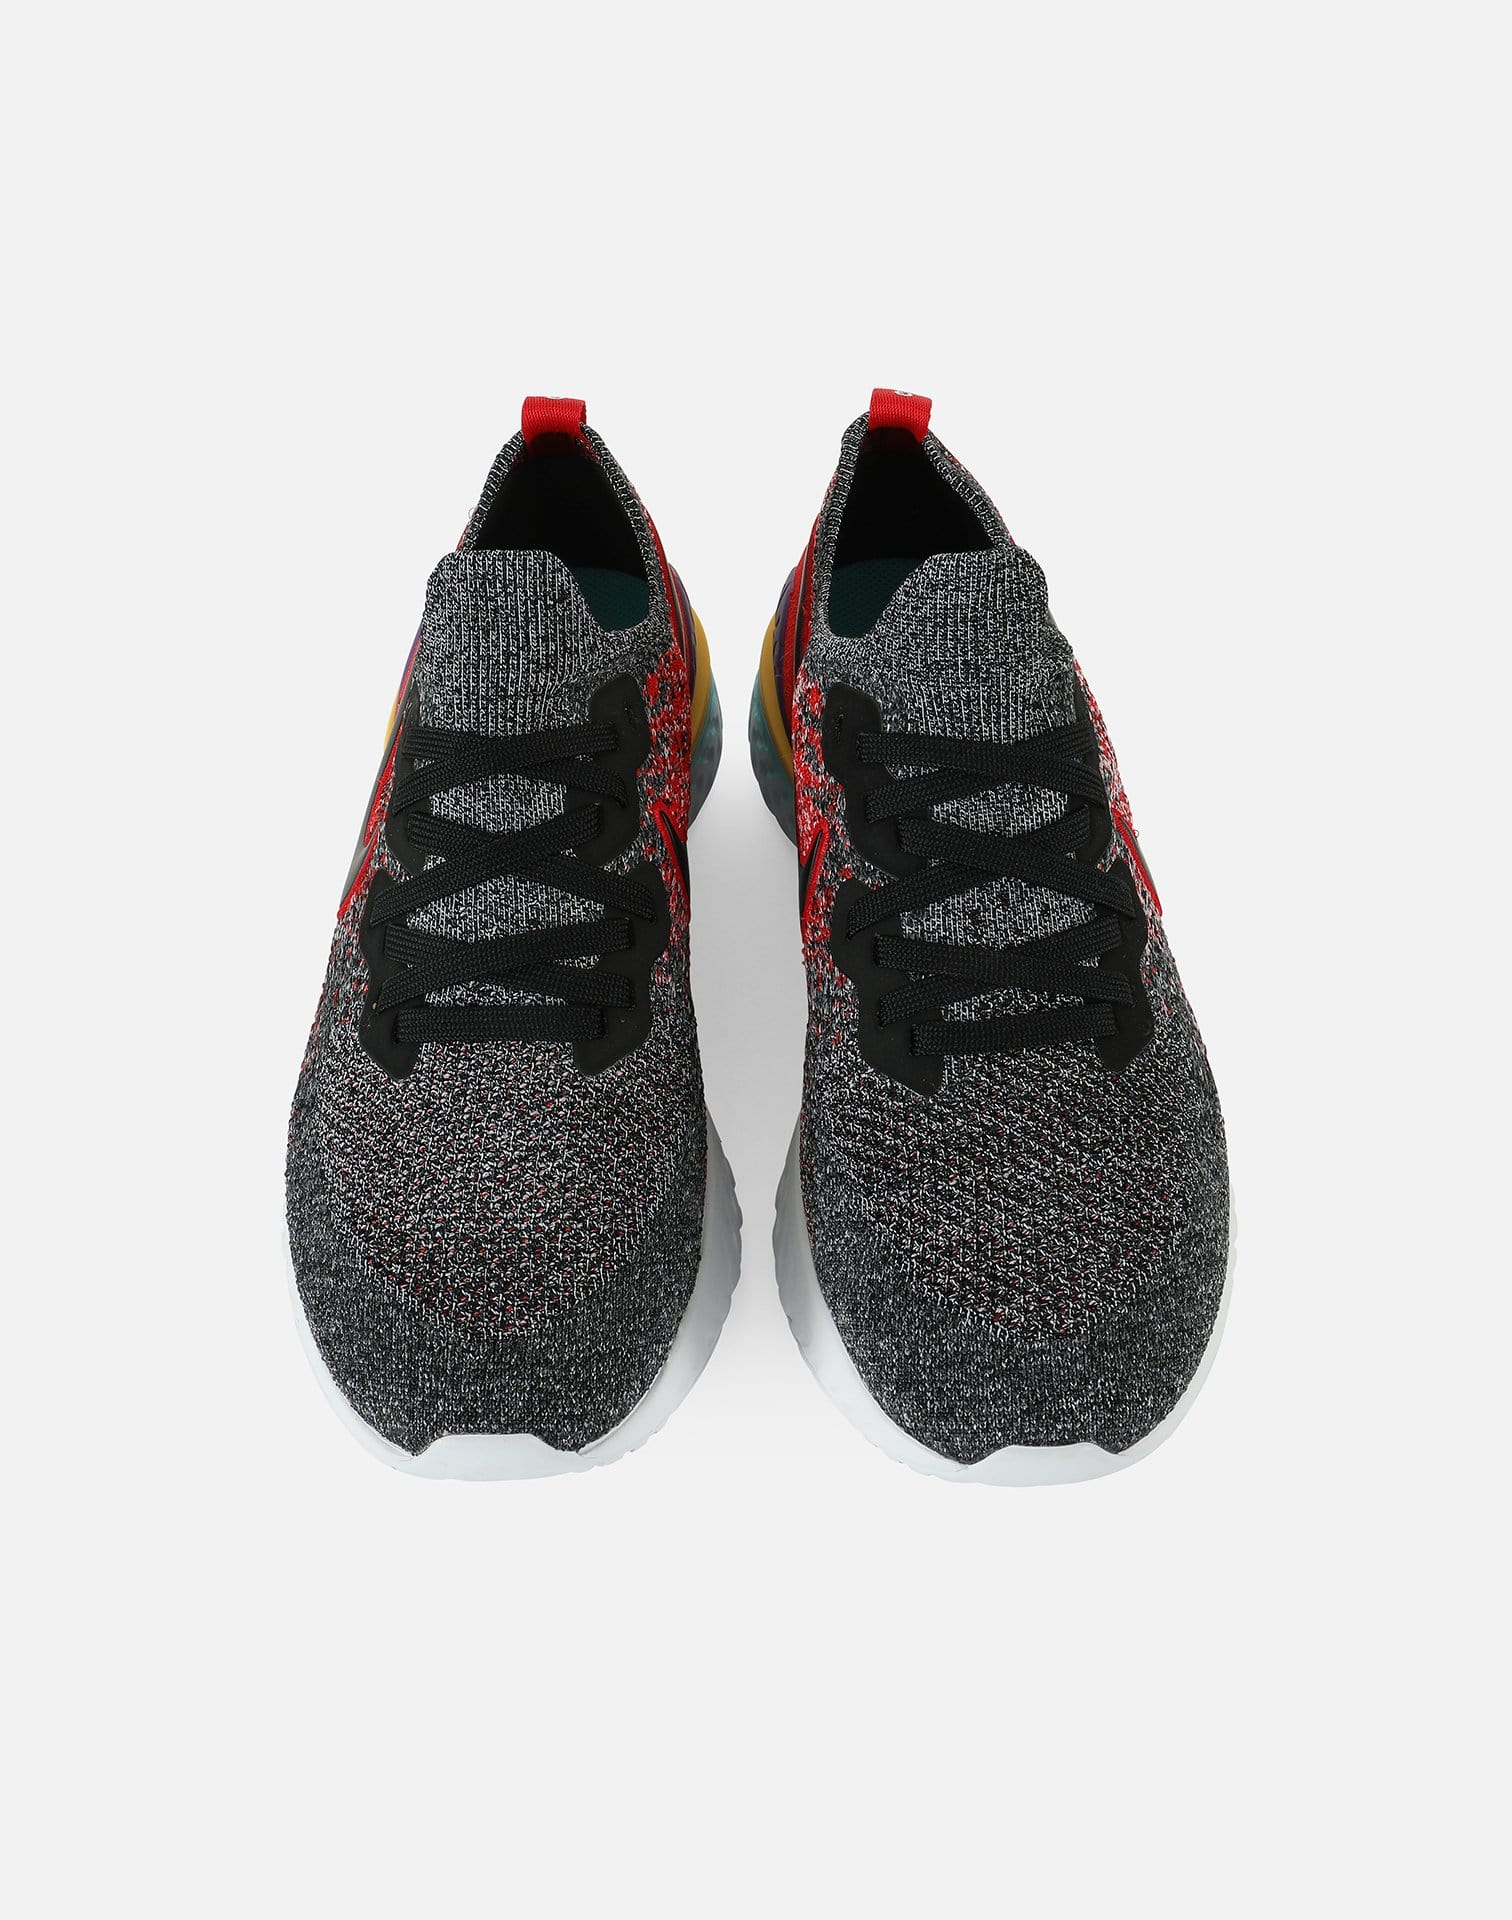 EPIC REACT FLYKNIT 2 – DTLR